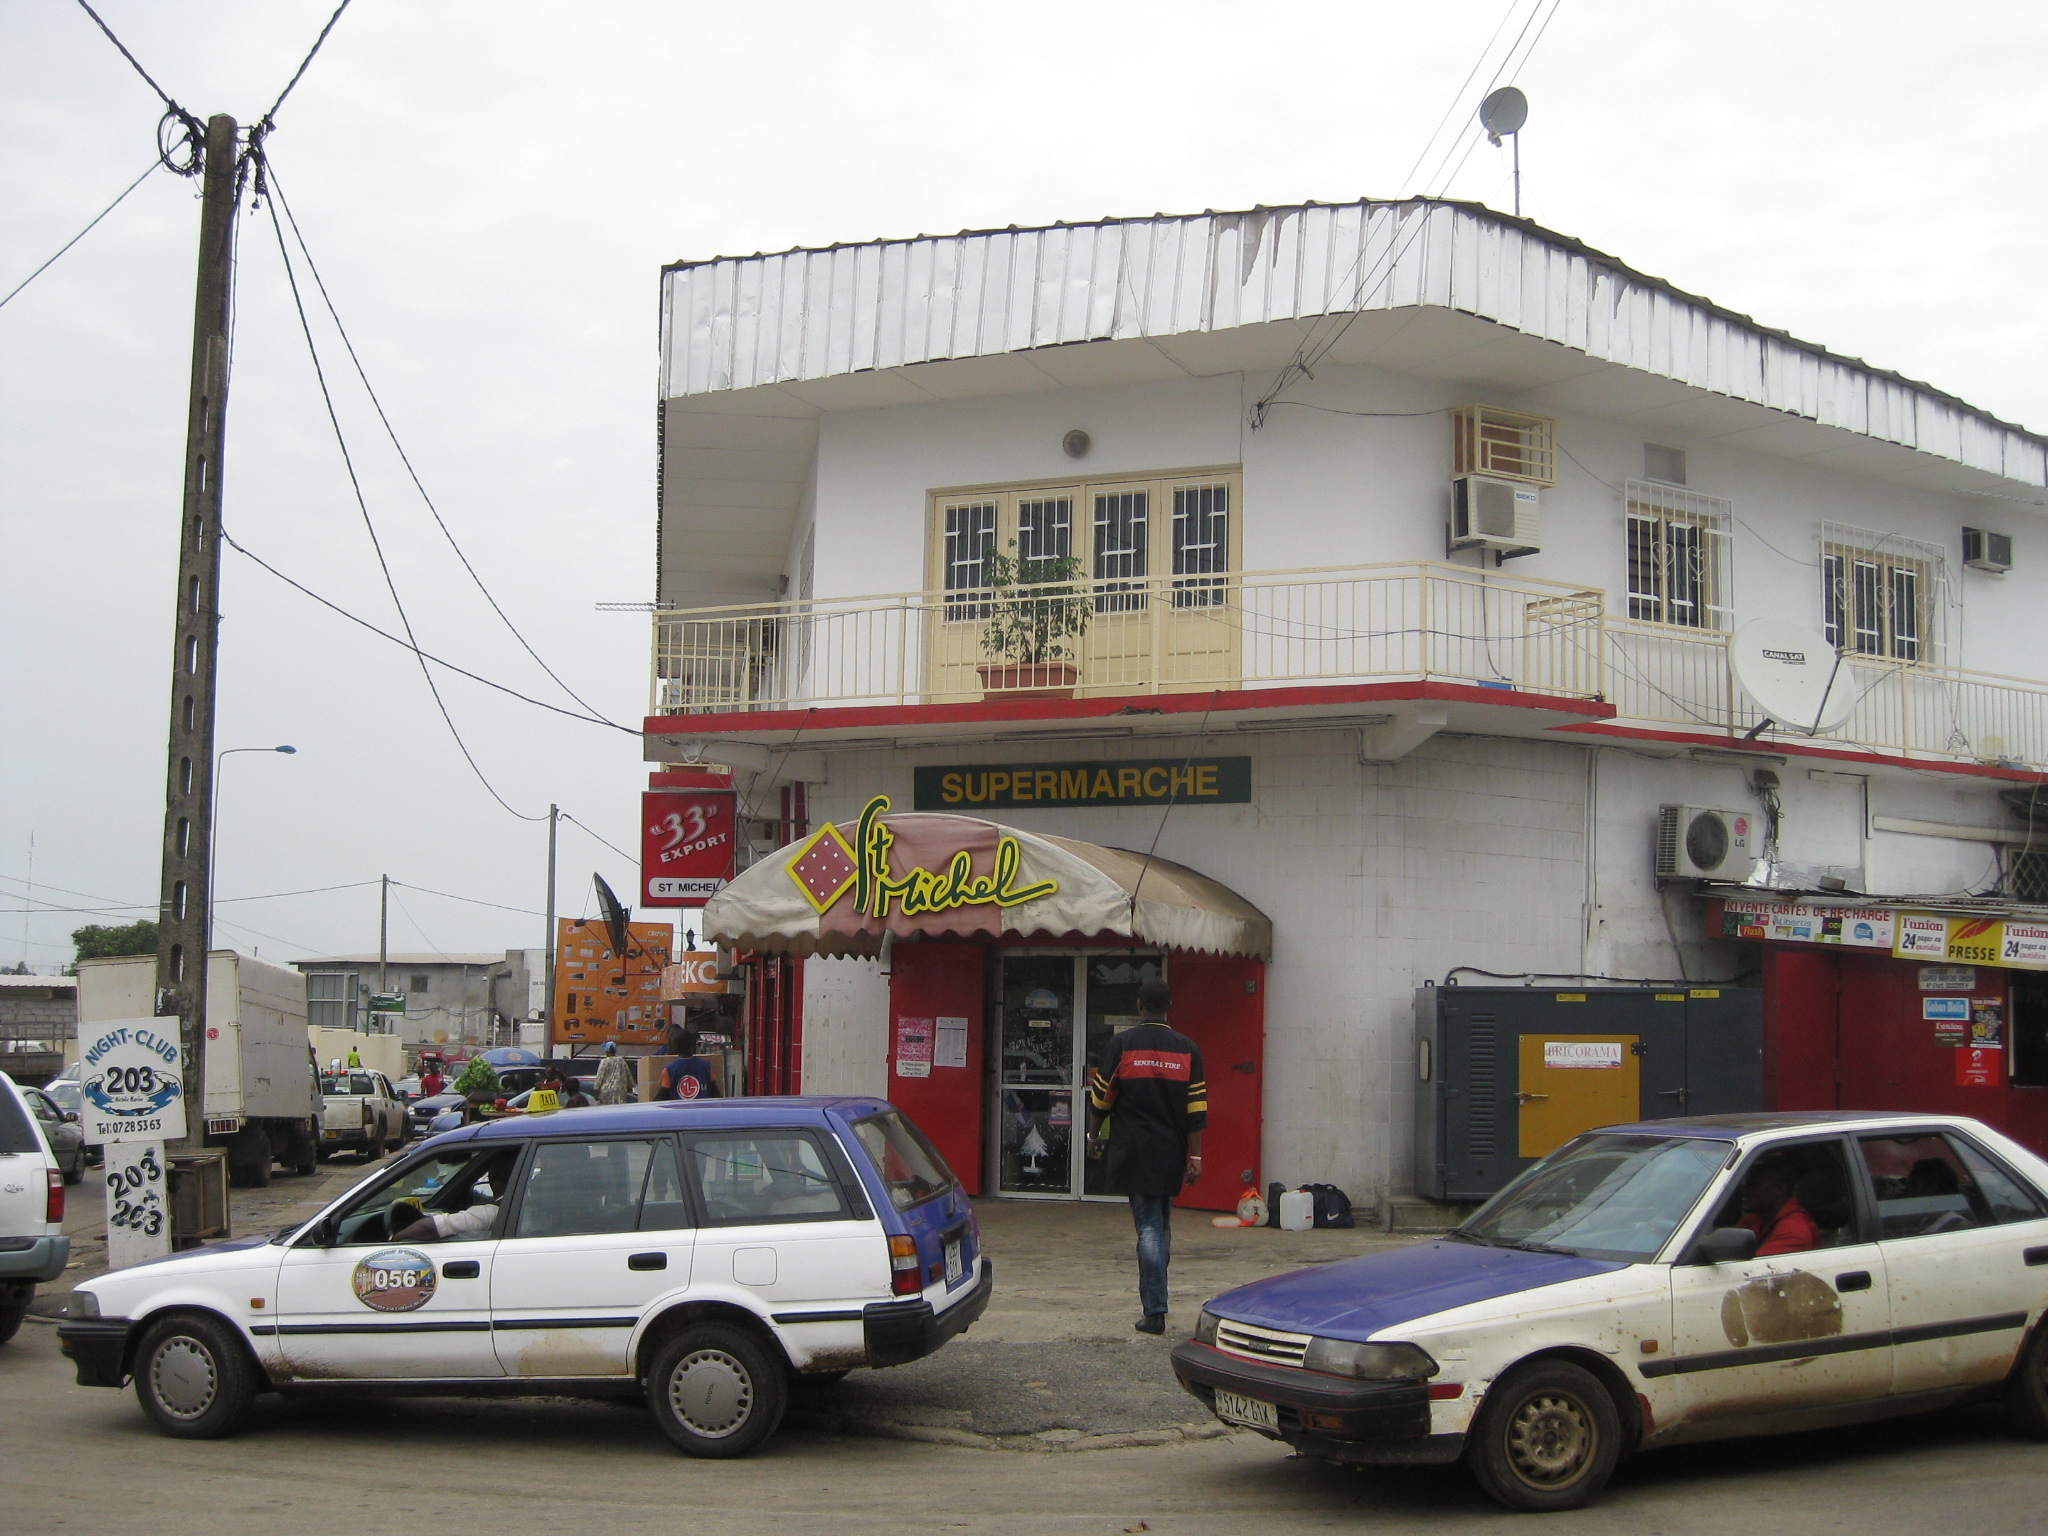 this supermarket in libreville has air conditioning. we spent a bit of time there. they also had very good baguettes.